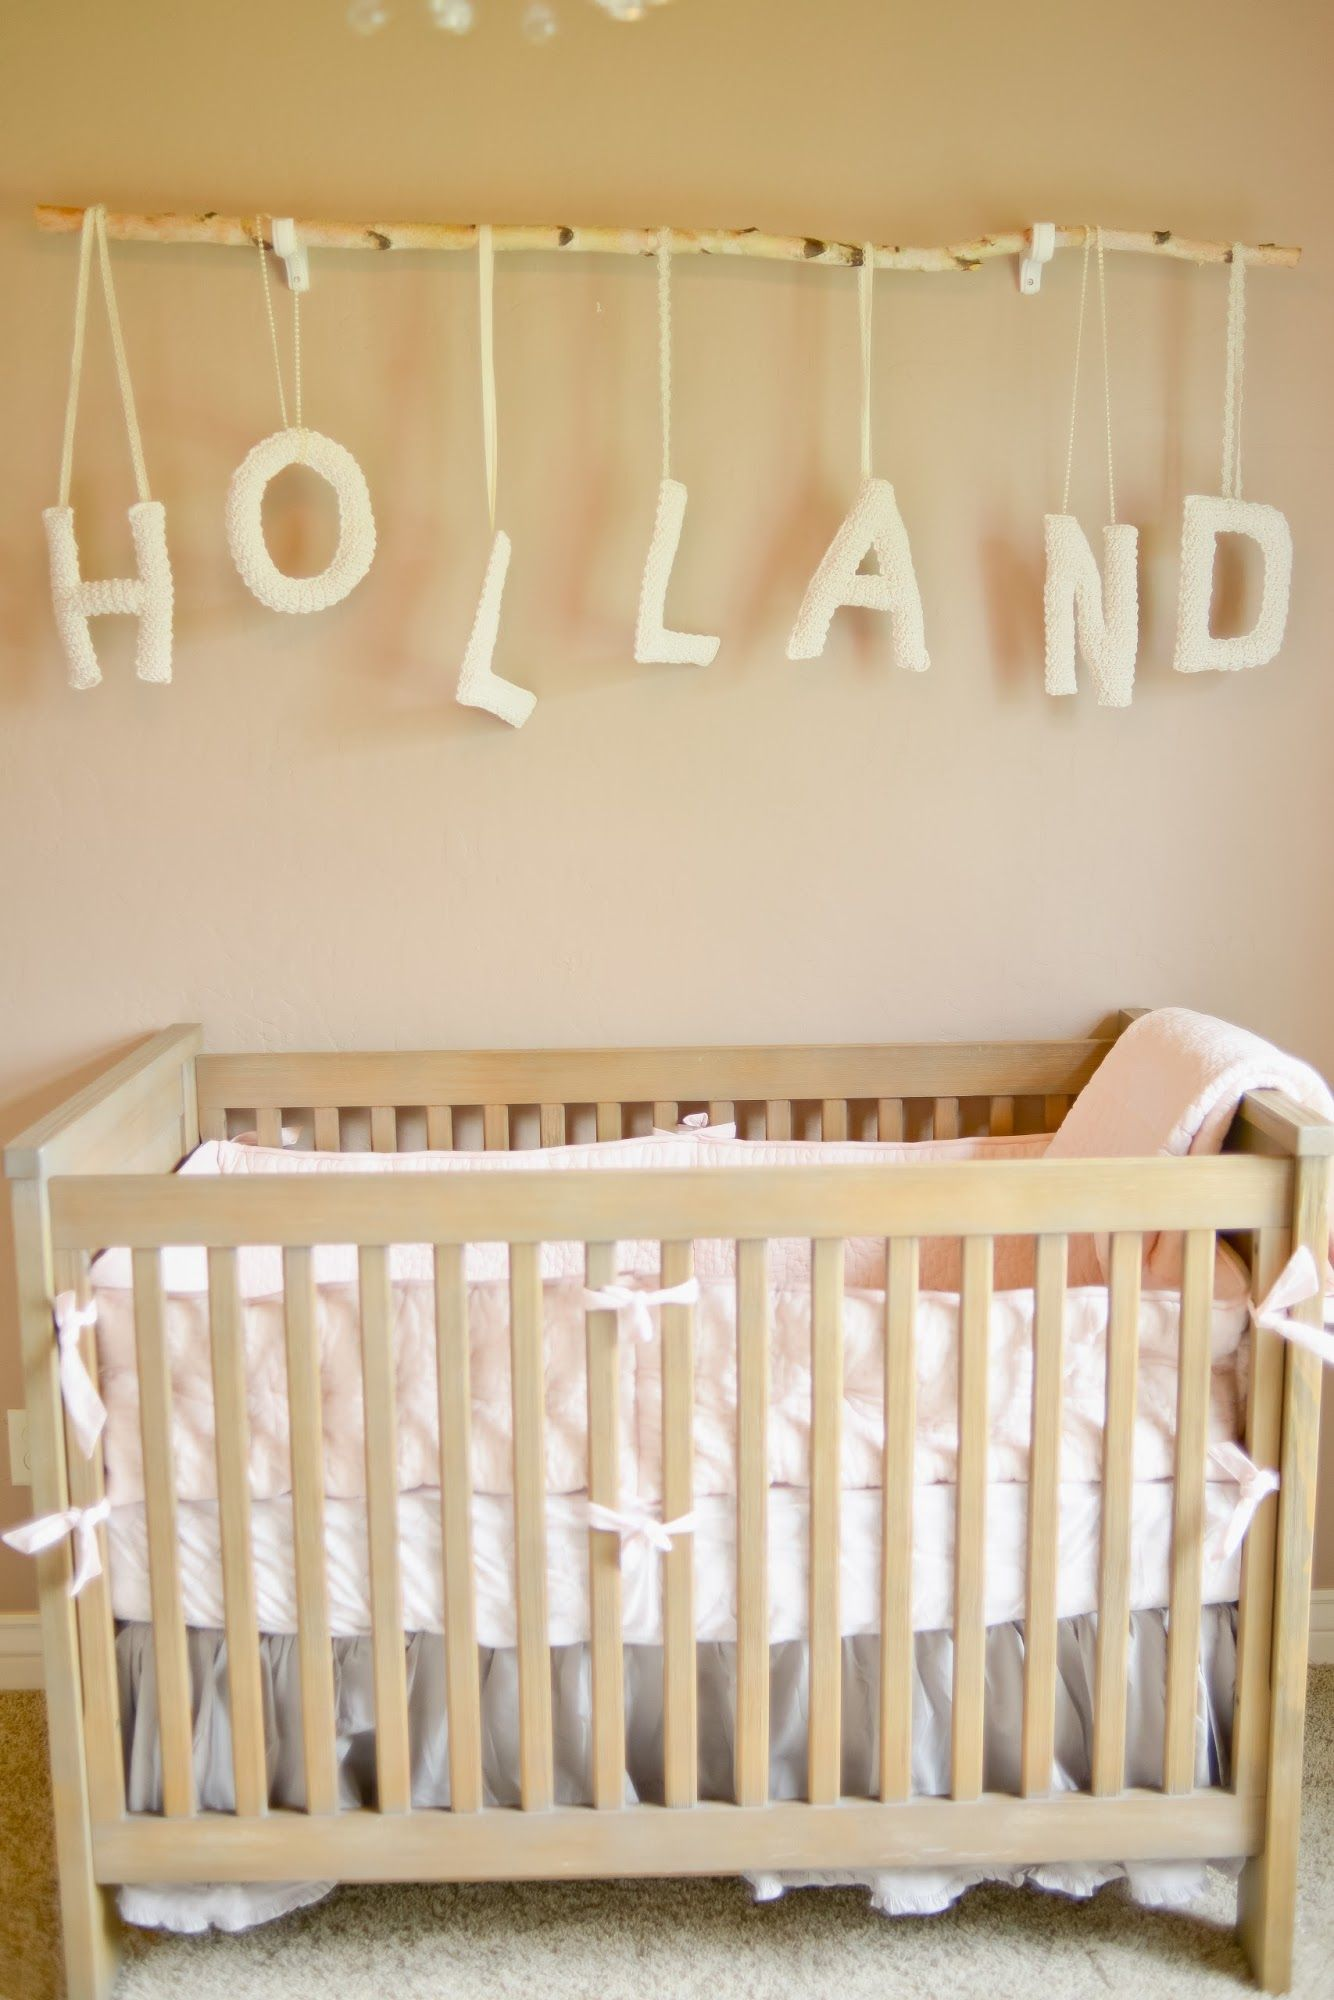 Cool Baby Boy Nursery Ideas: Cute Nursery Idea- Baby Name Strung From Painted Branch